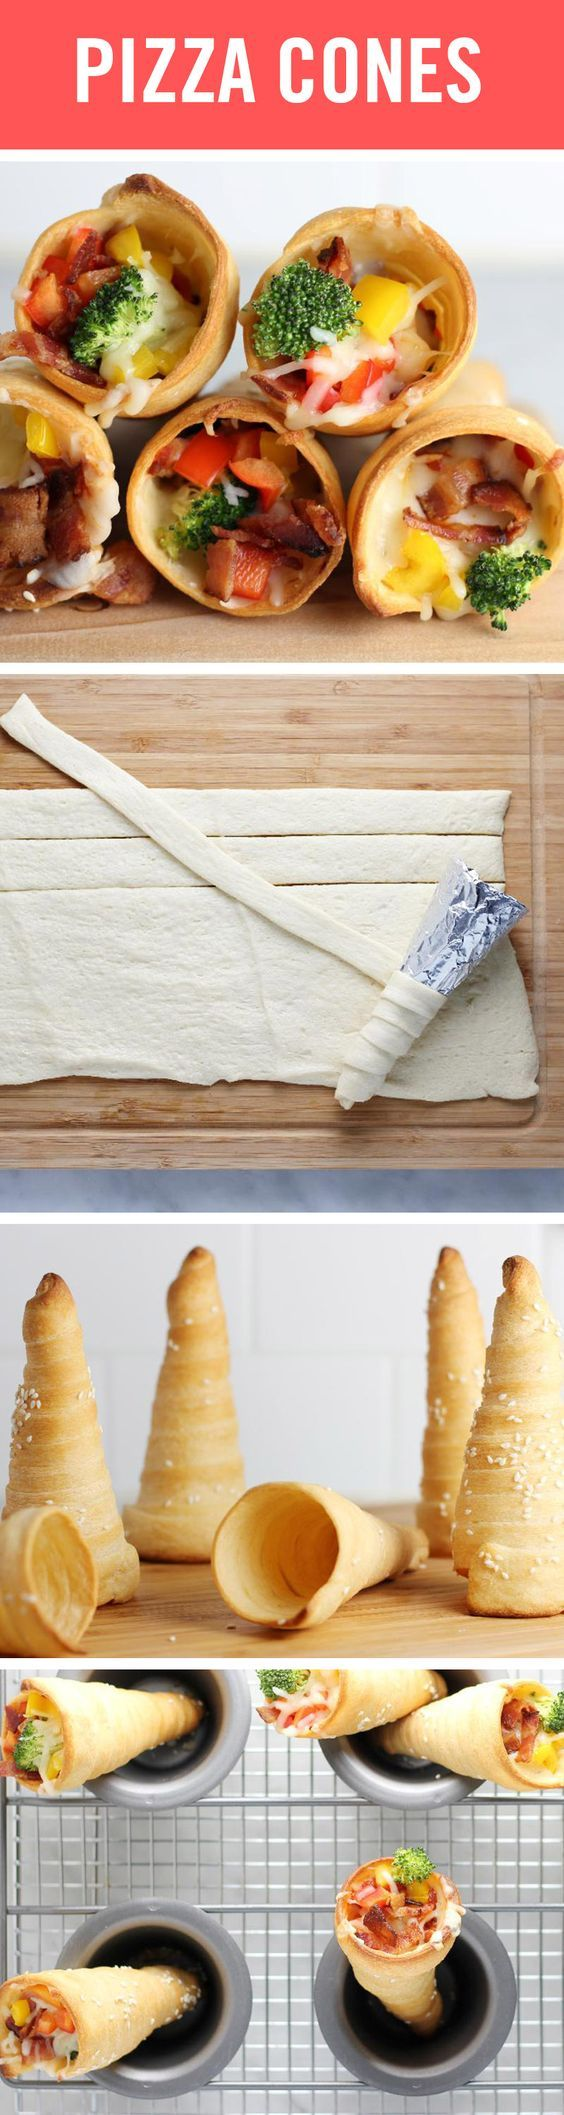 CRESCENT ROLL HACKS: BERRIES 'N CREAM AND PIZZA CONES – Surreal Dream